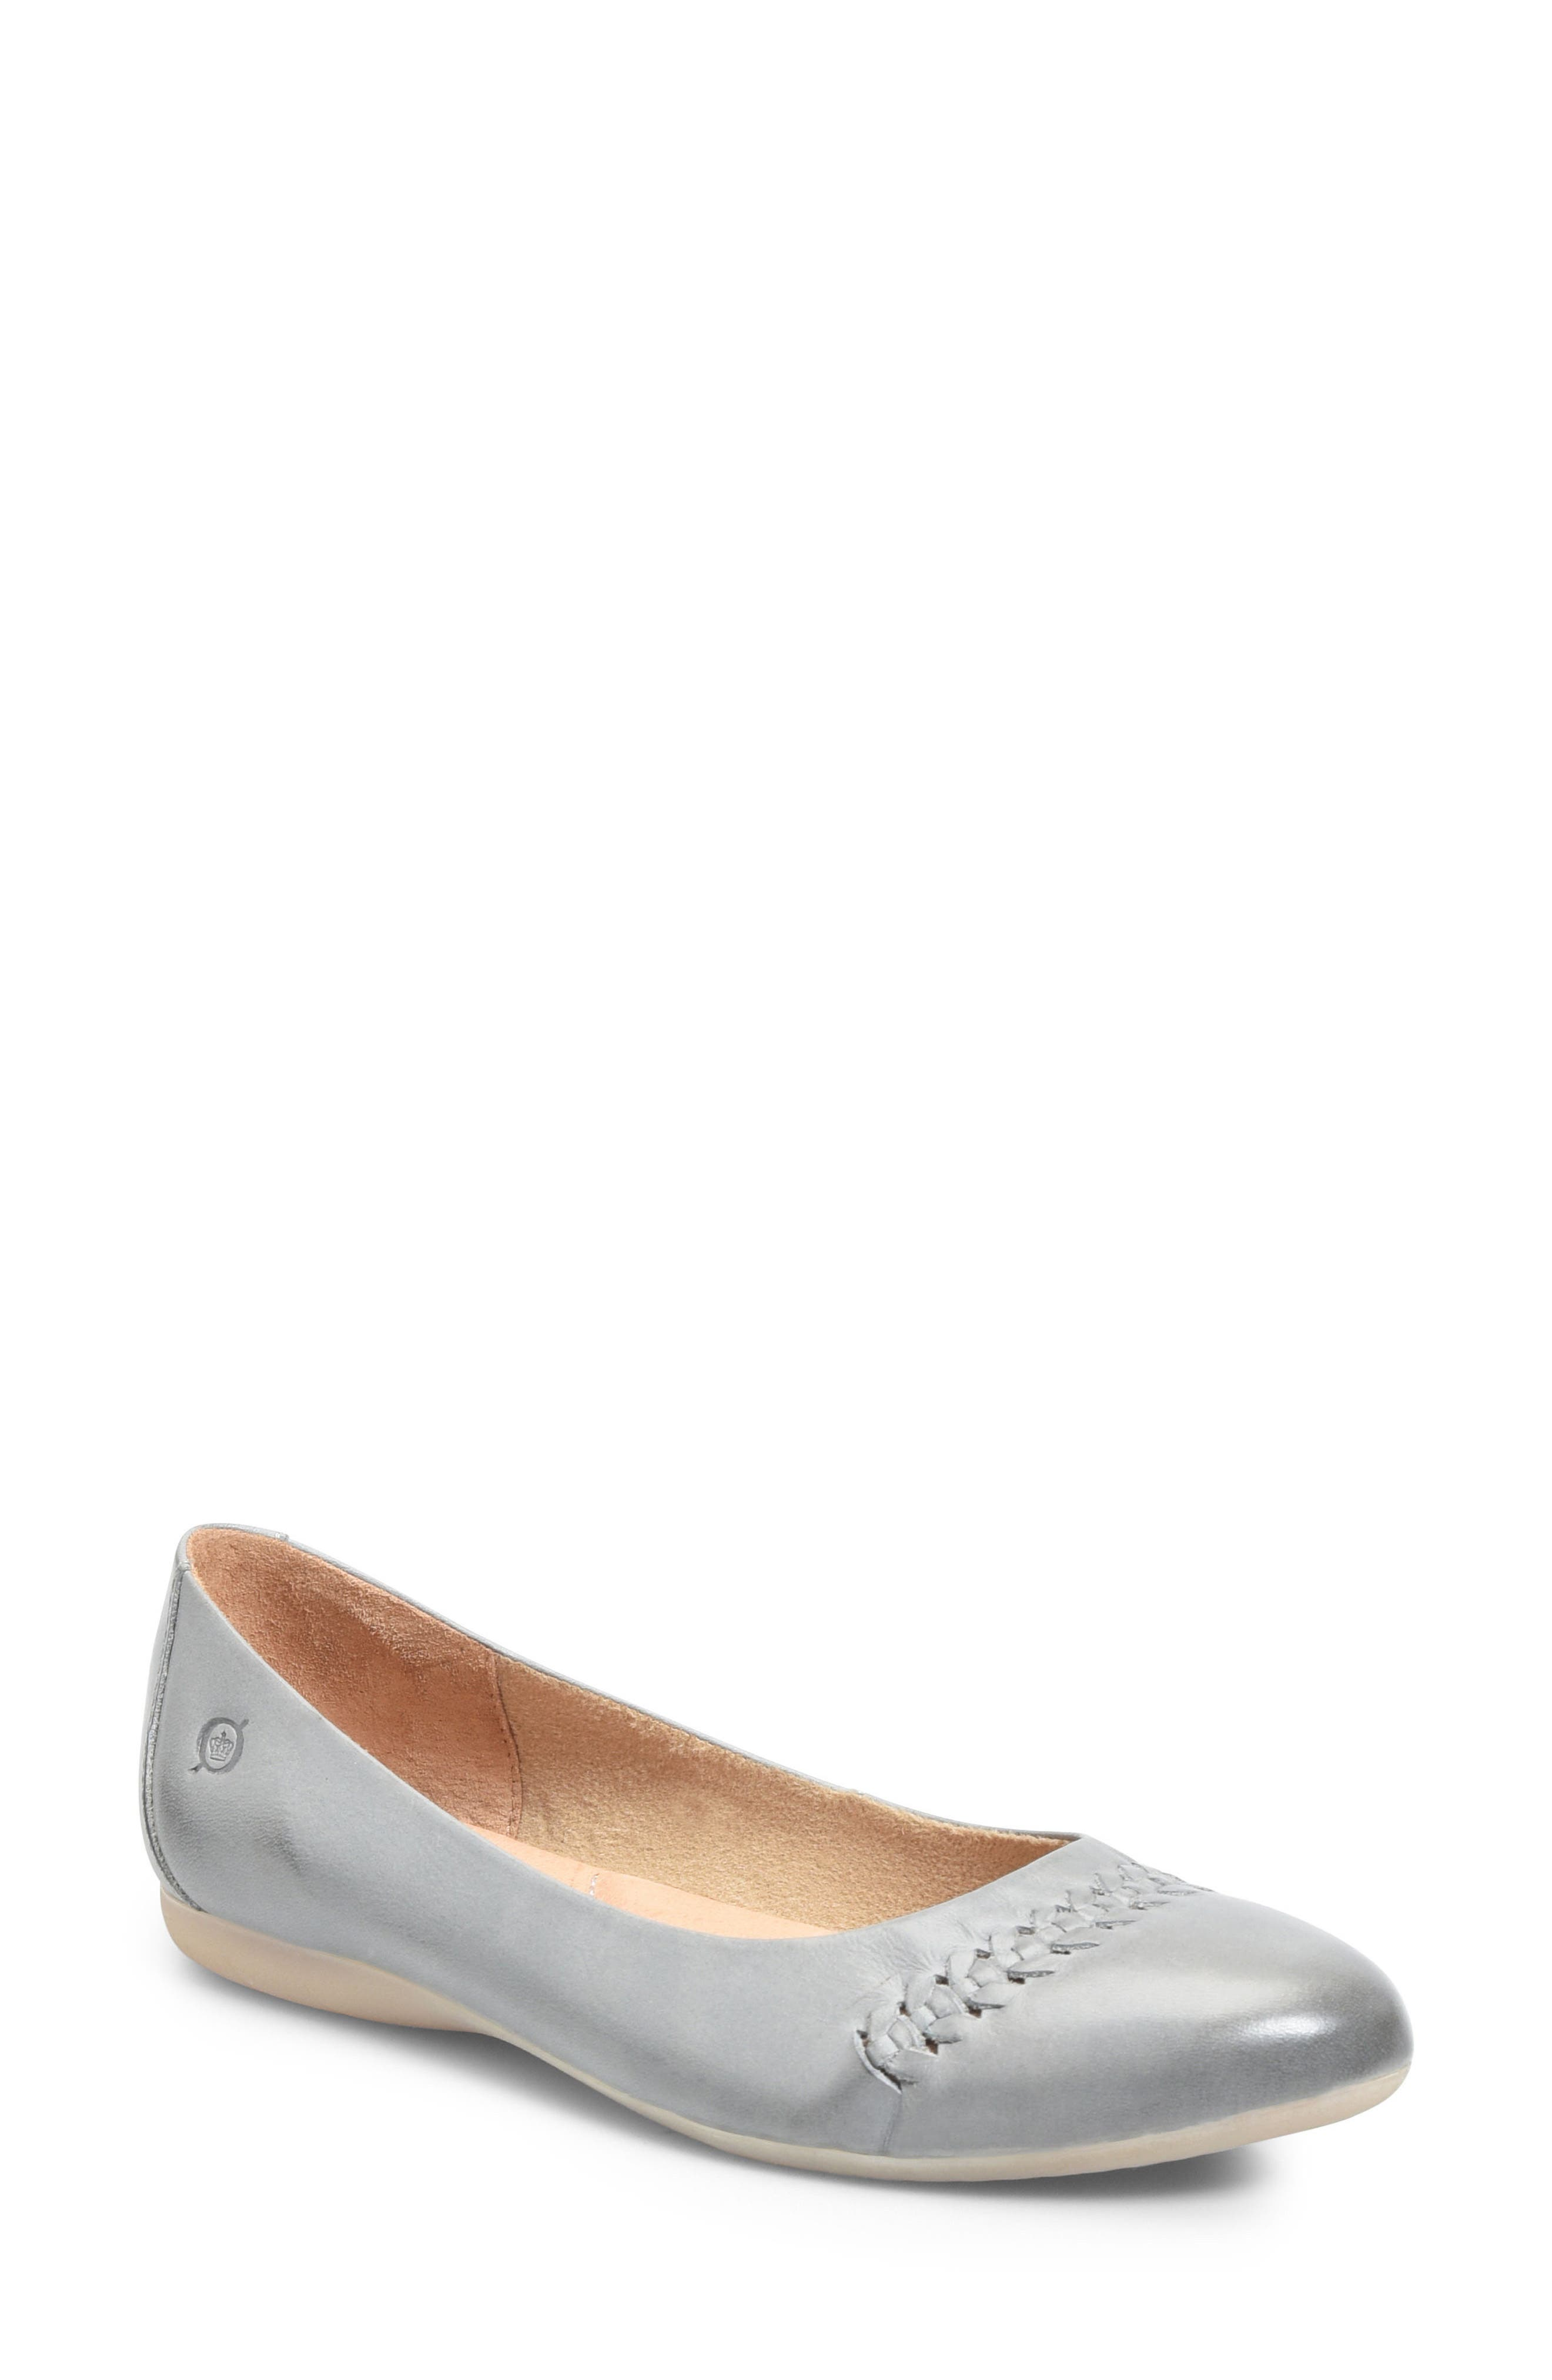 Nordstrom Ladies Shoes Flats